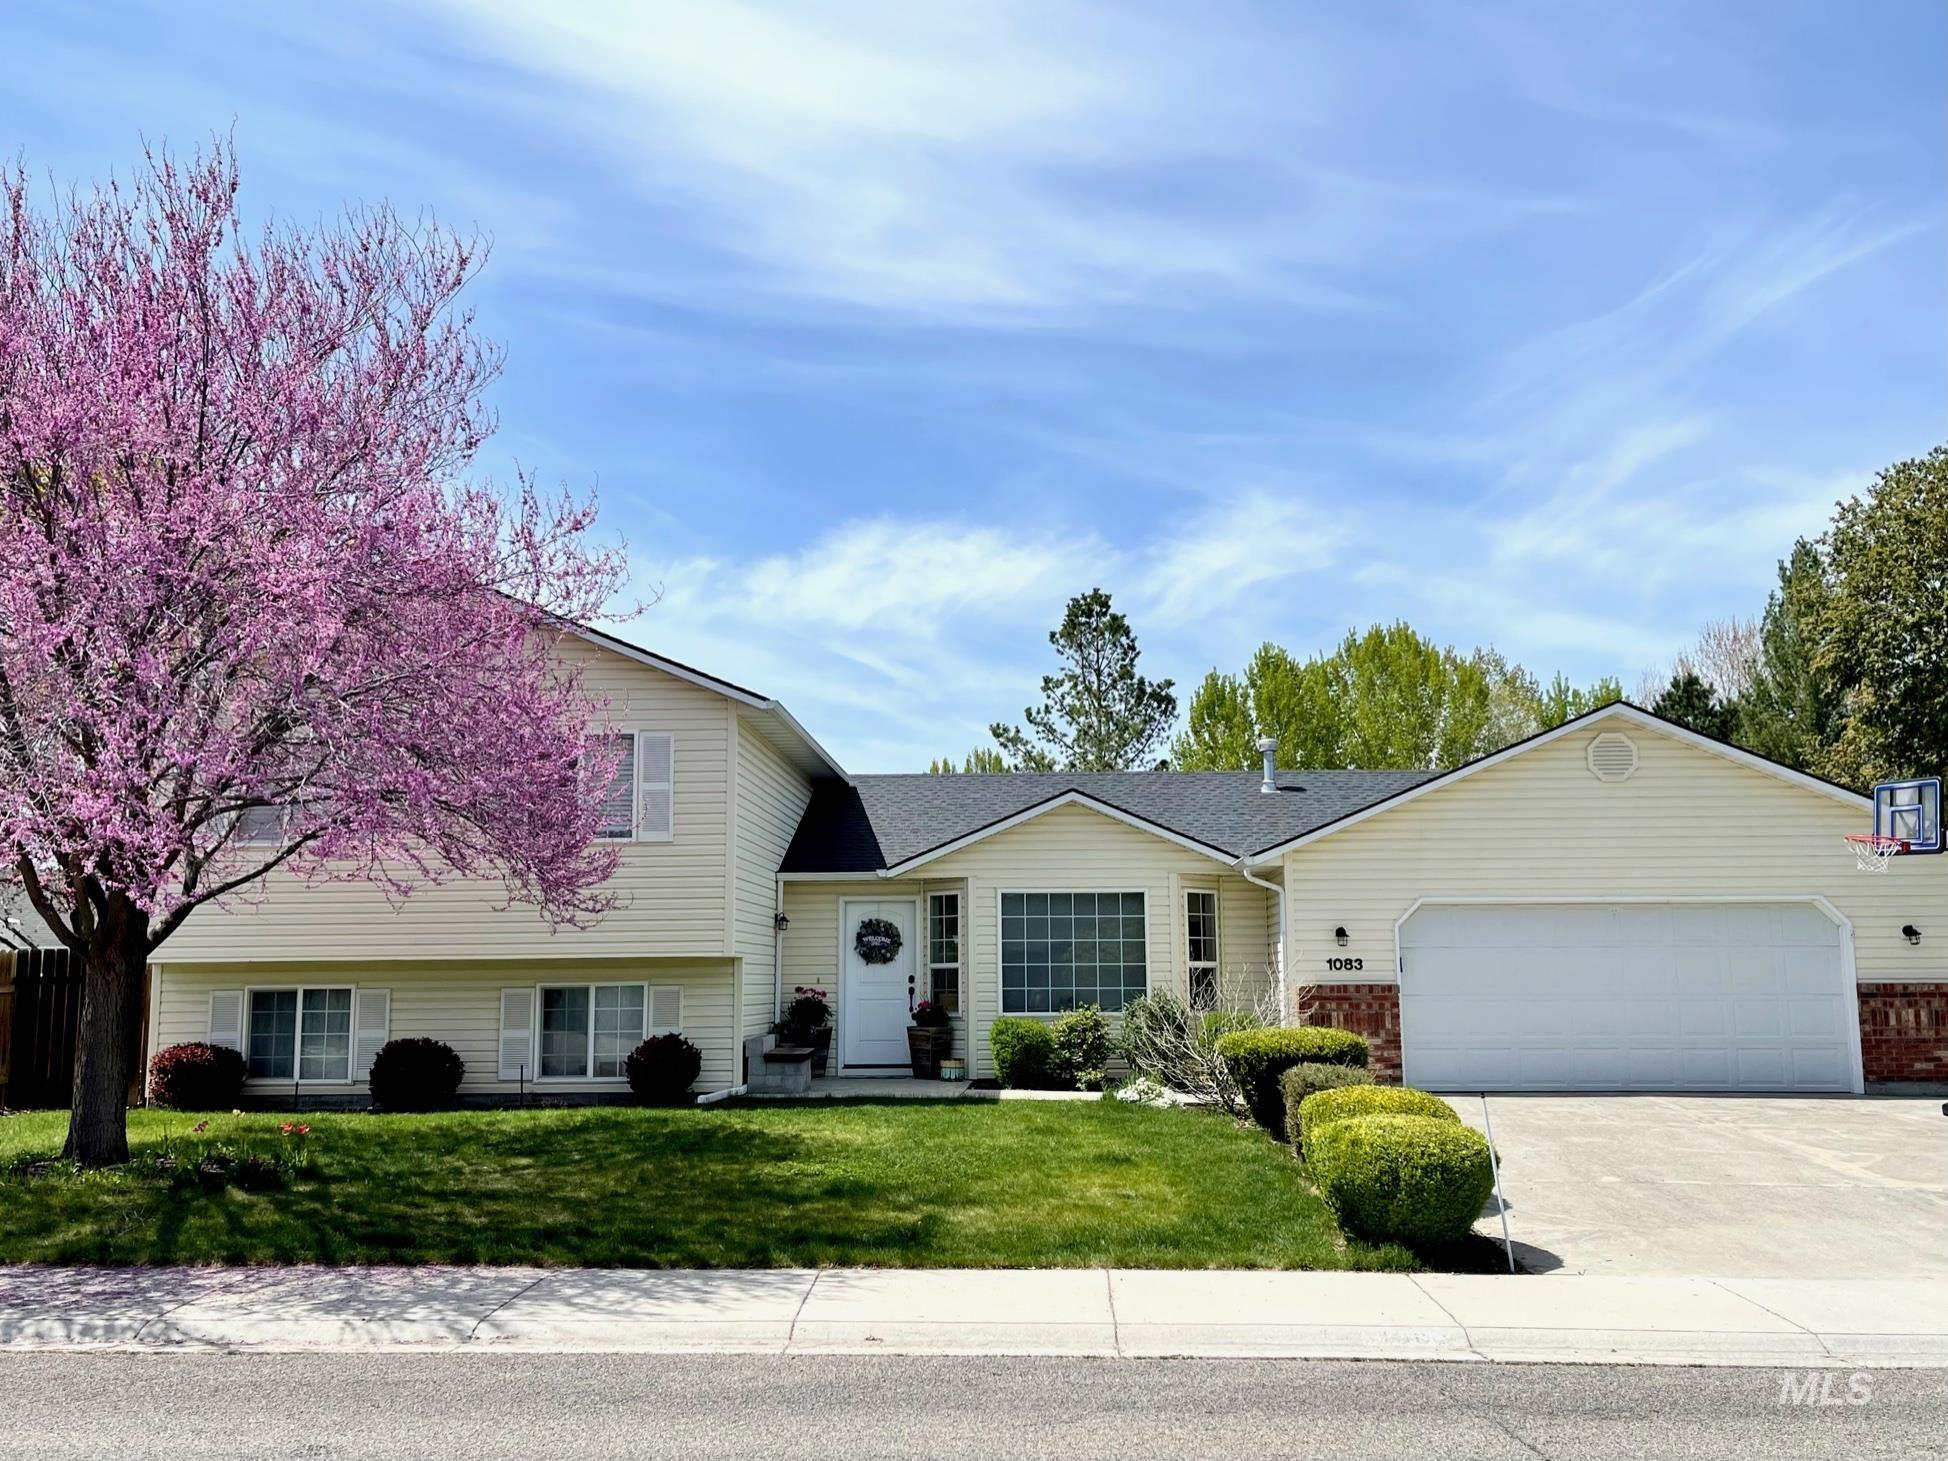 1083 N HAVEN COVE AVE Property Photo - Meridian, ID real estate listing